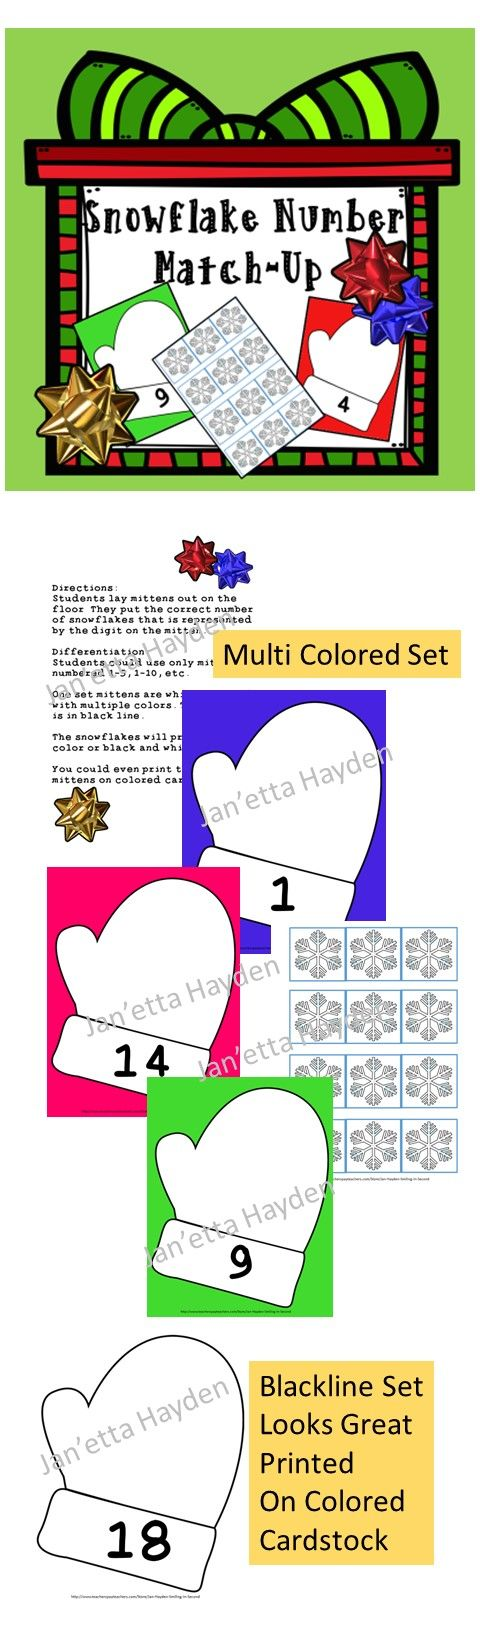 ... mittens. One set contains multi-colored mitten backgrounds. The second